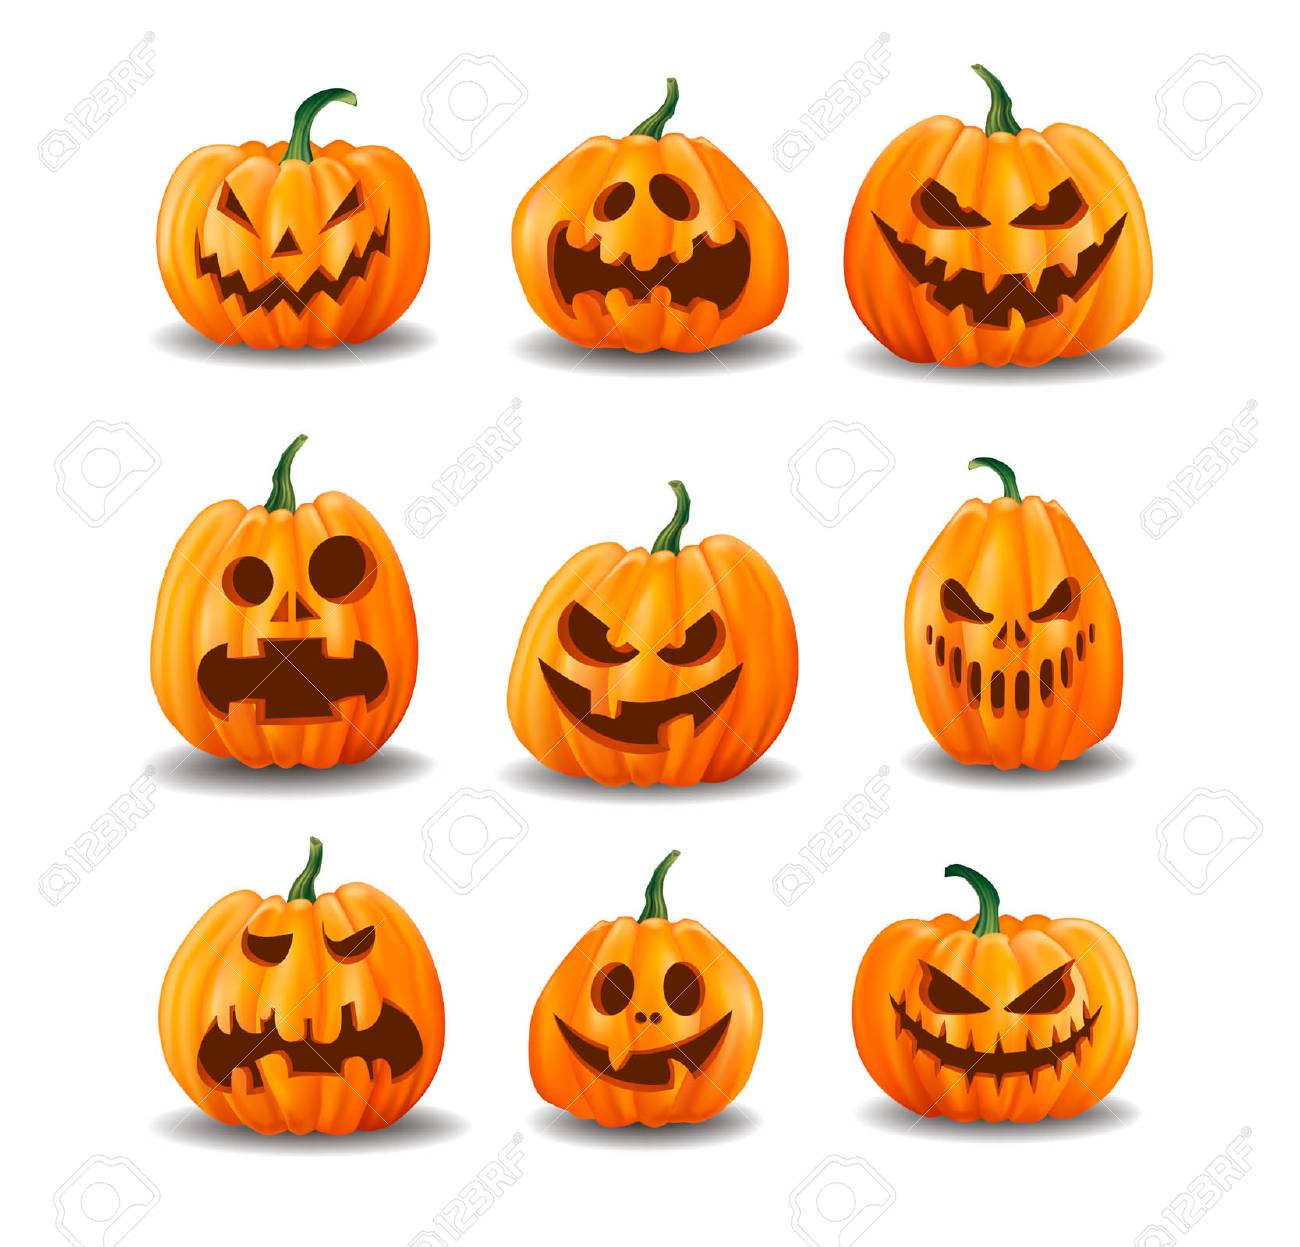 Set of realistic Halloween pumpkins isolated on white background. Vector illustration. - 131651355